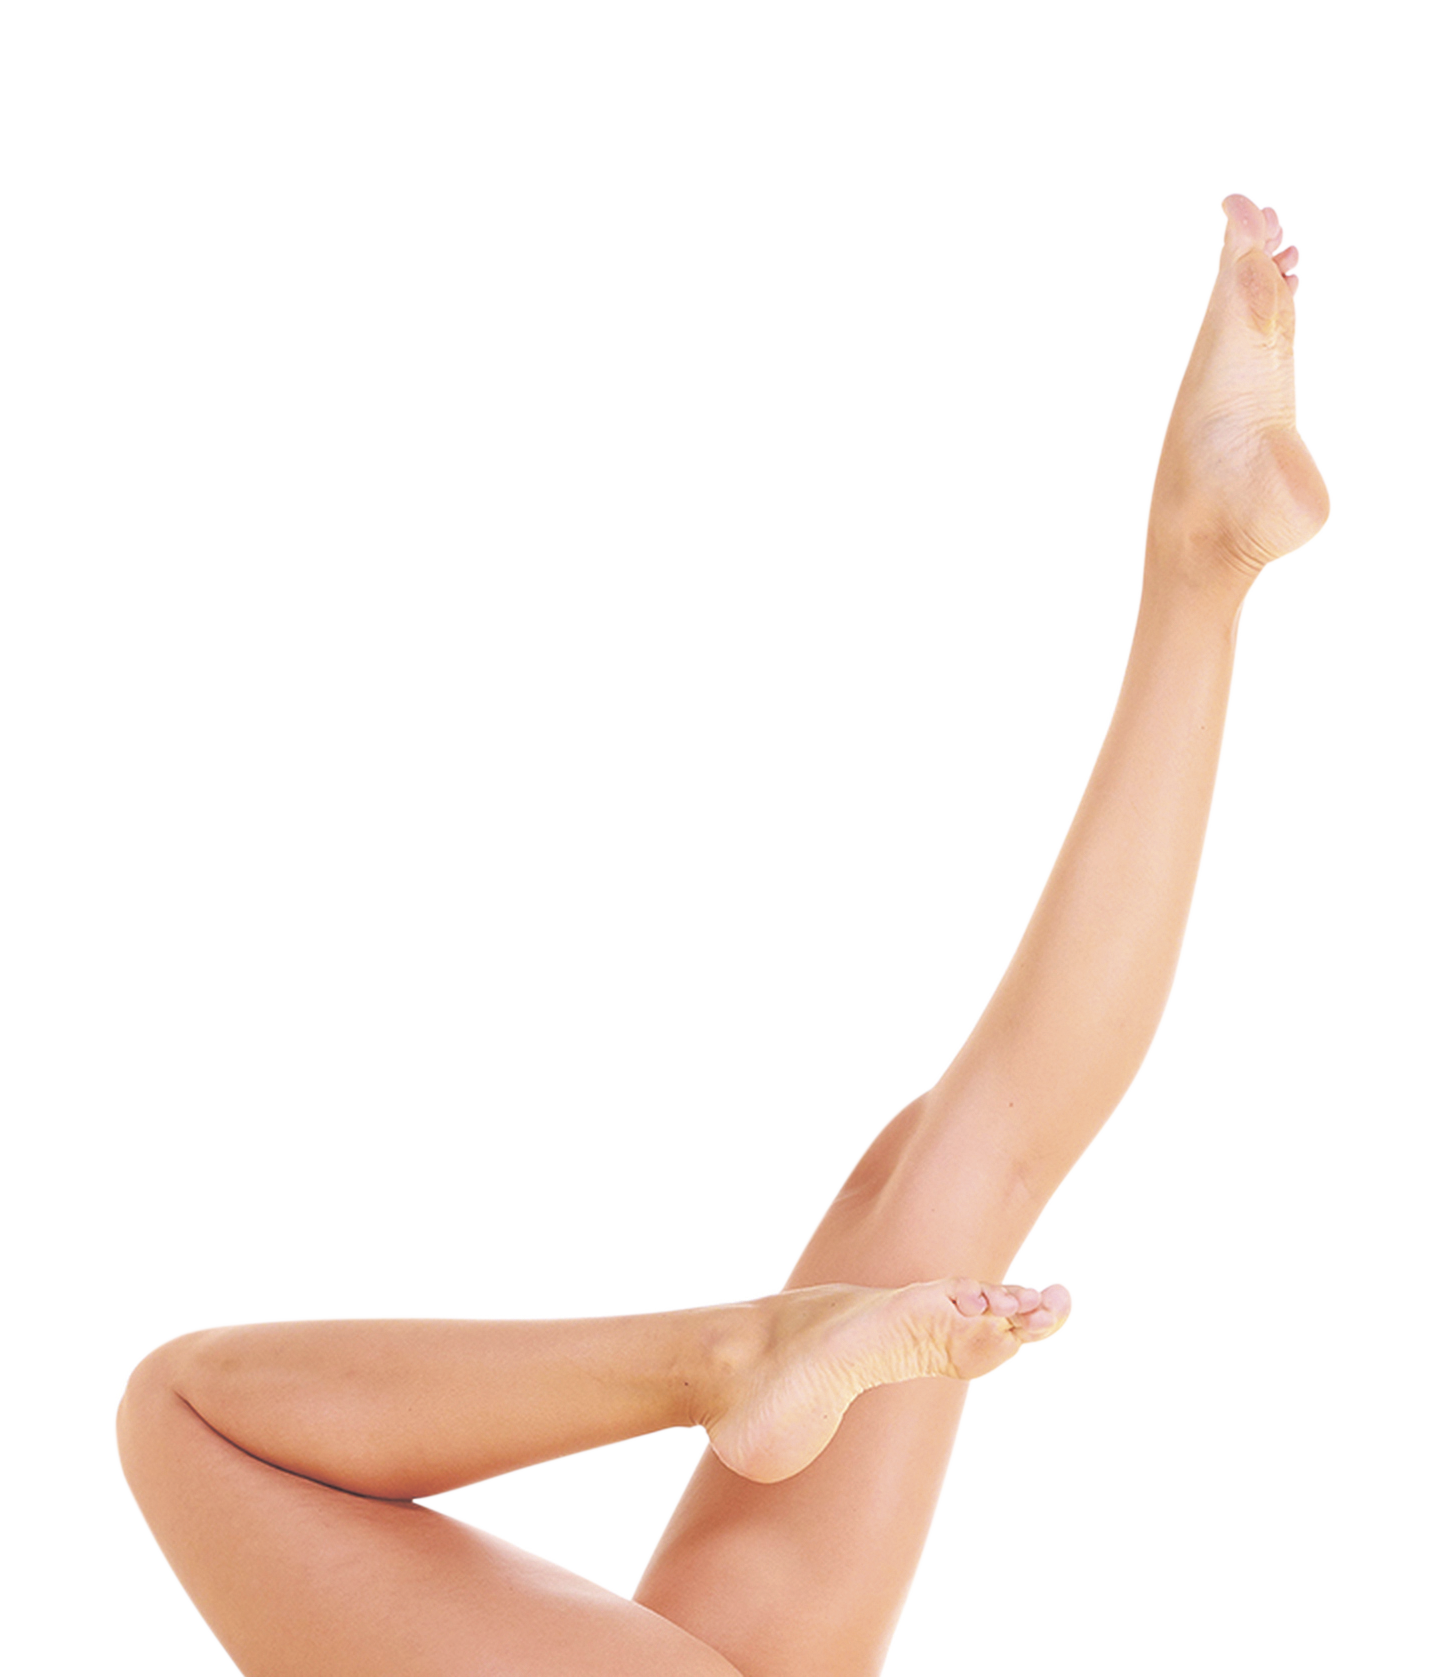 Female arm png. Legs images free download